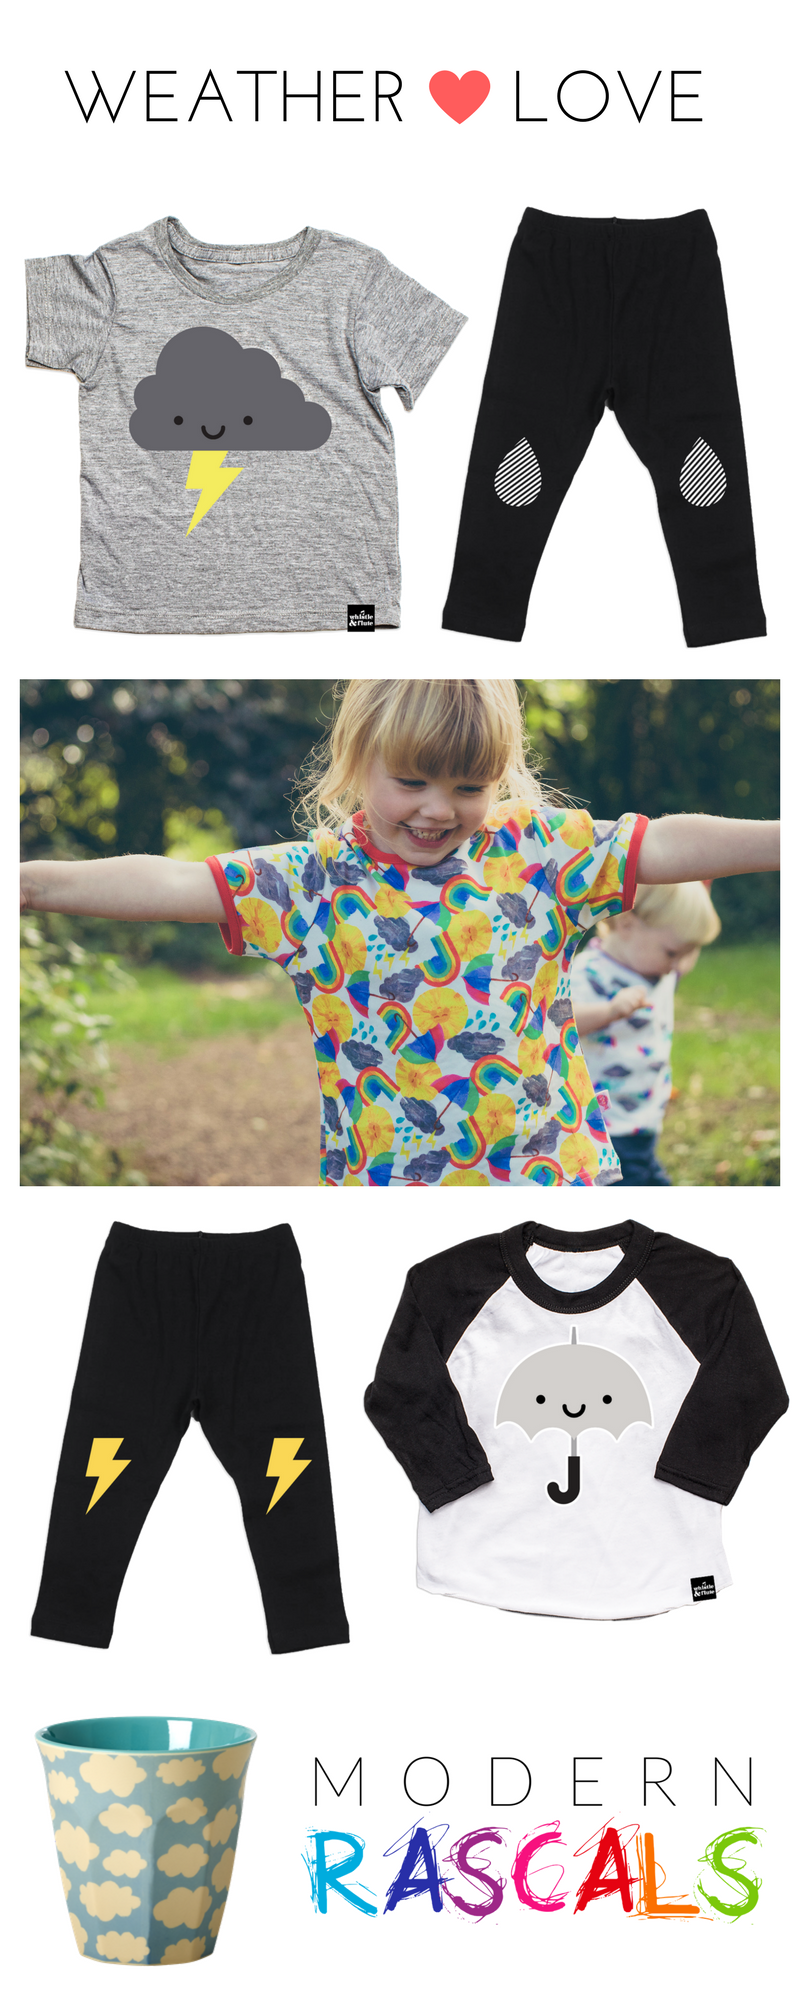 Modern Rascals Kids Weather Favourites Look Book